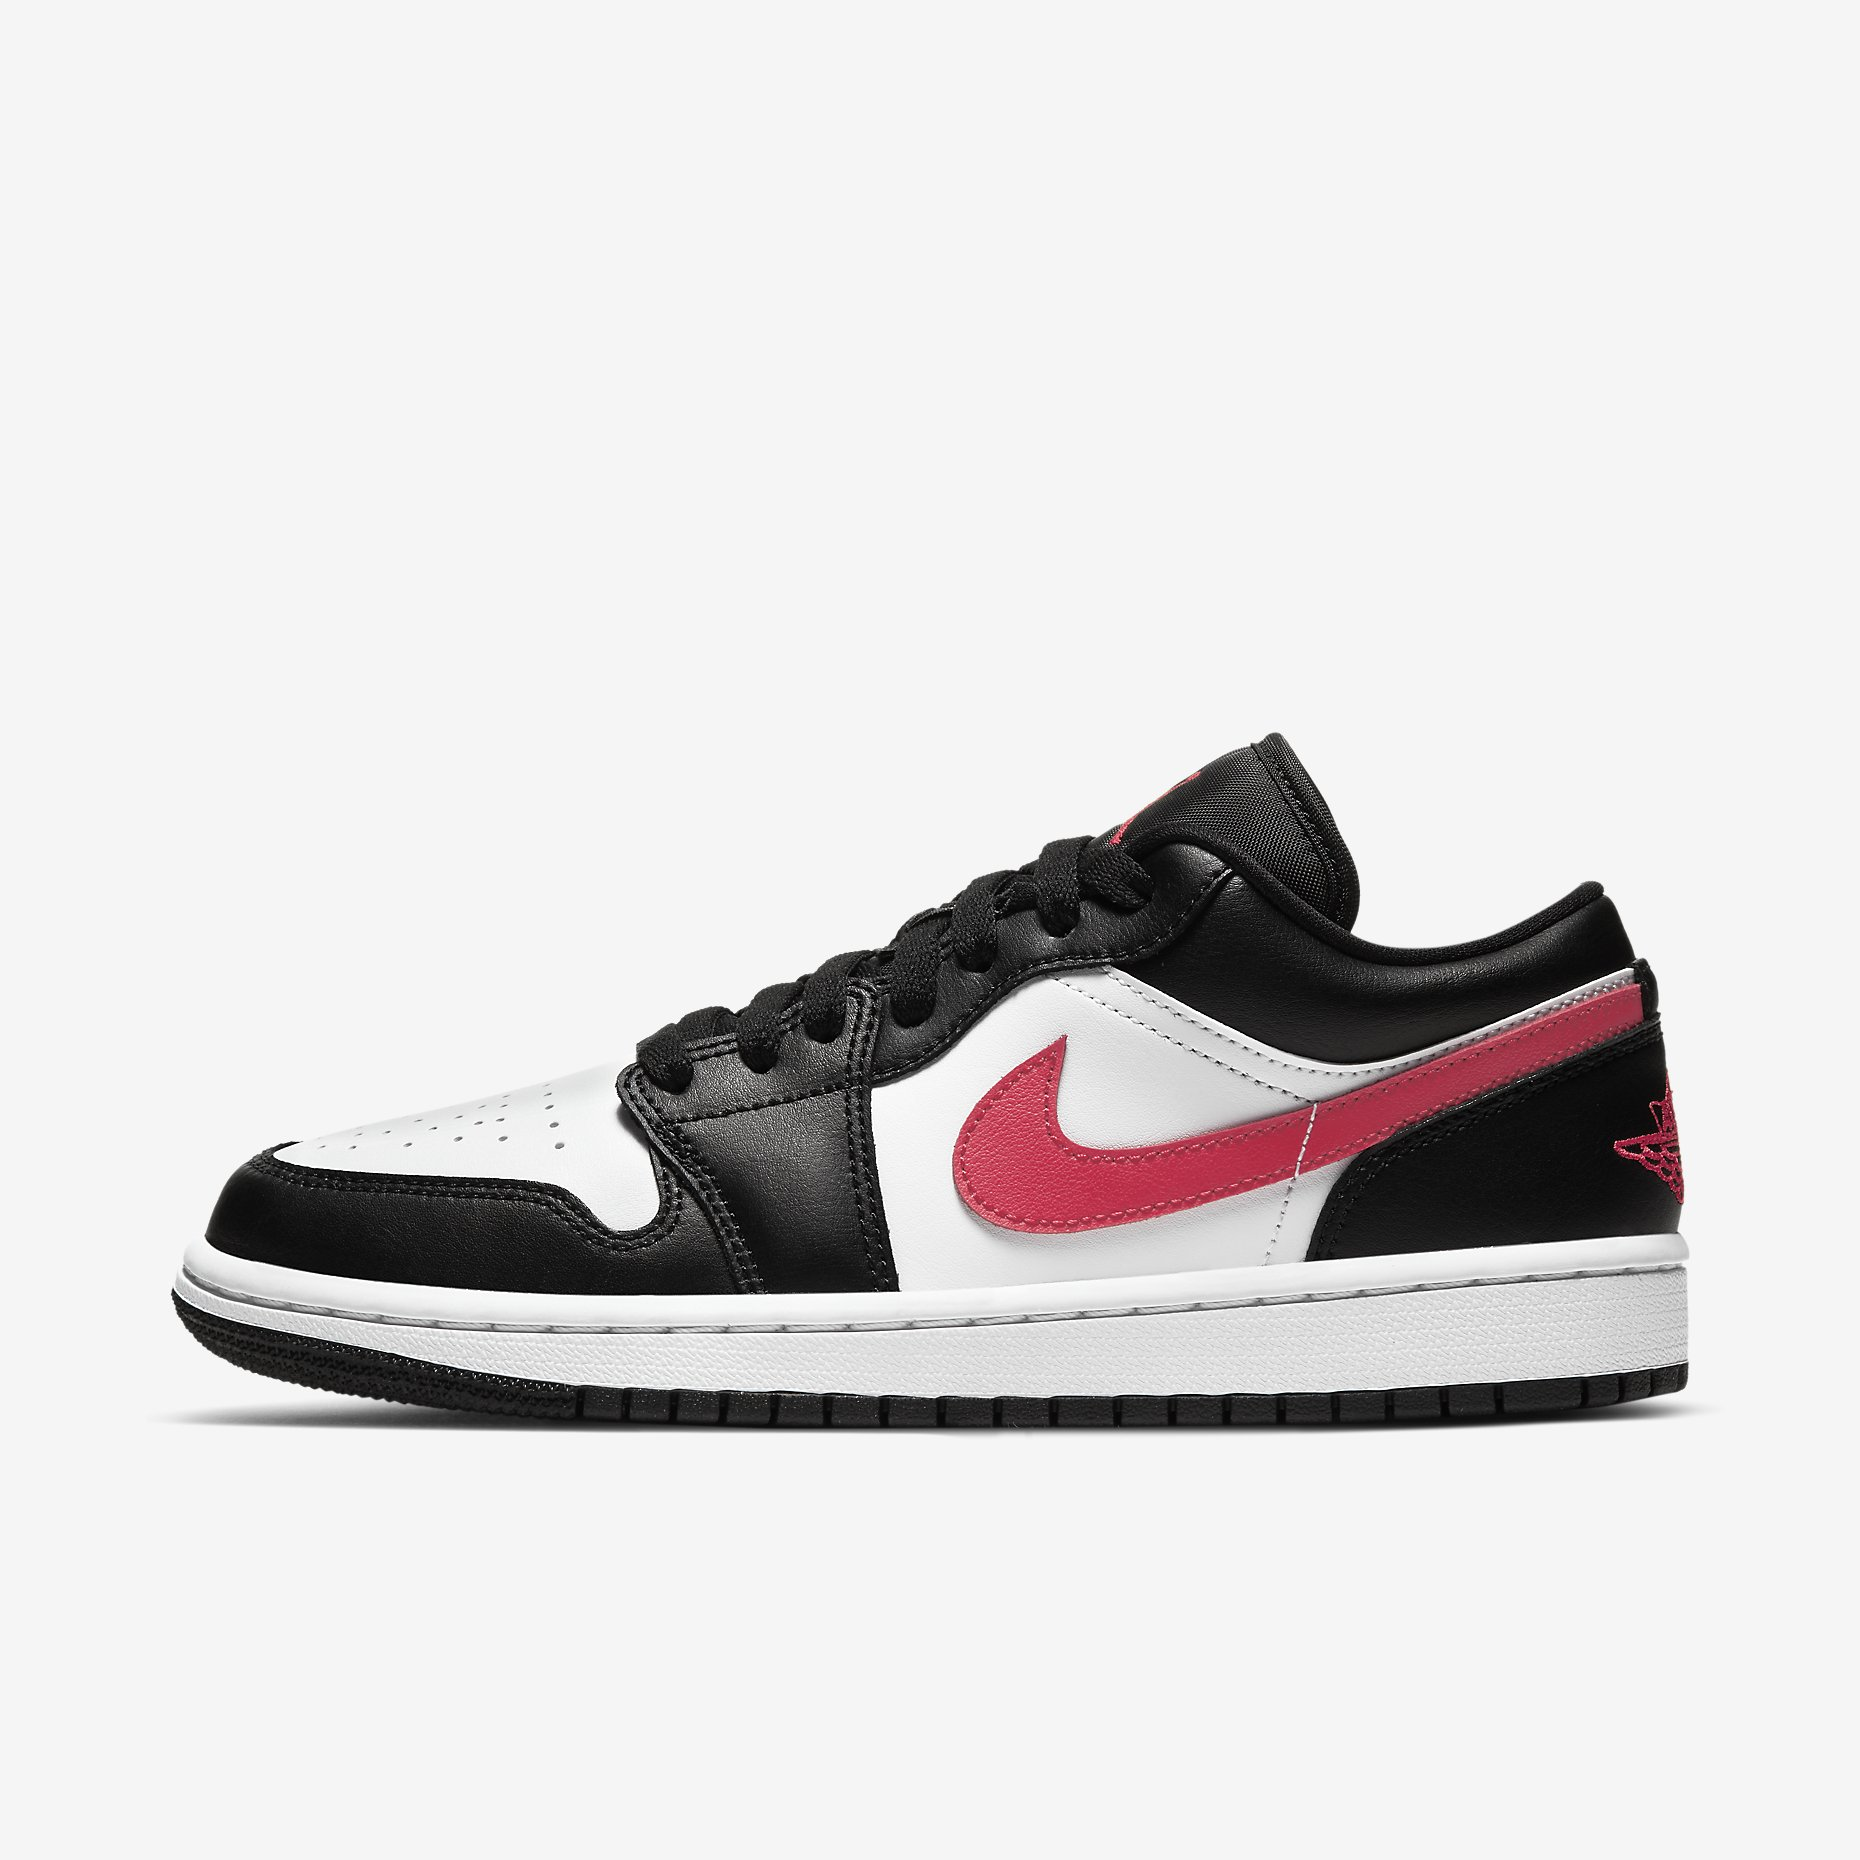 Women's Air Jordan 1 Low 'Black/Siren Red'}